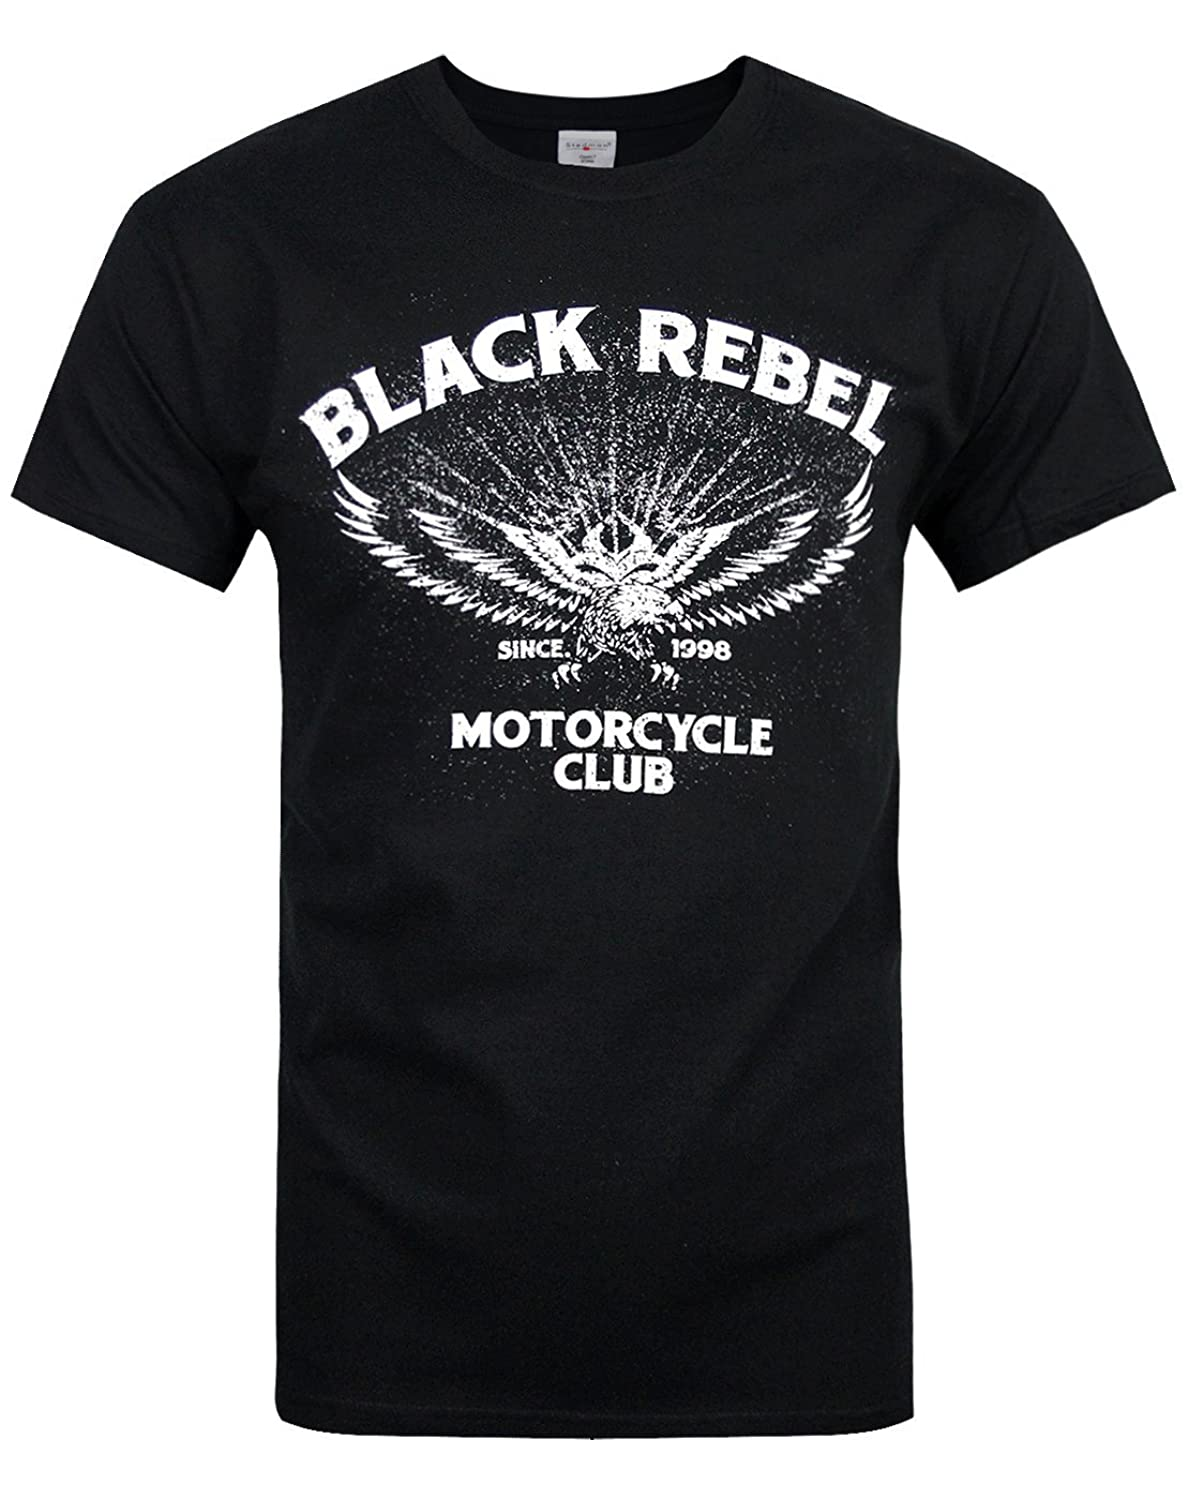 T shirt black rebel motorcycle club - Official Black Rebel Motorcycle Club Men S T Shirt Xxl Amazon Co Uk Clothing